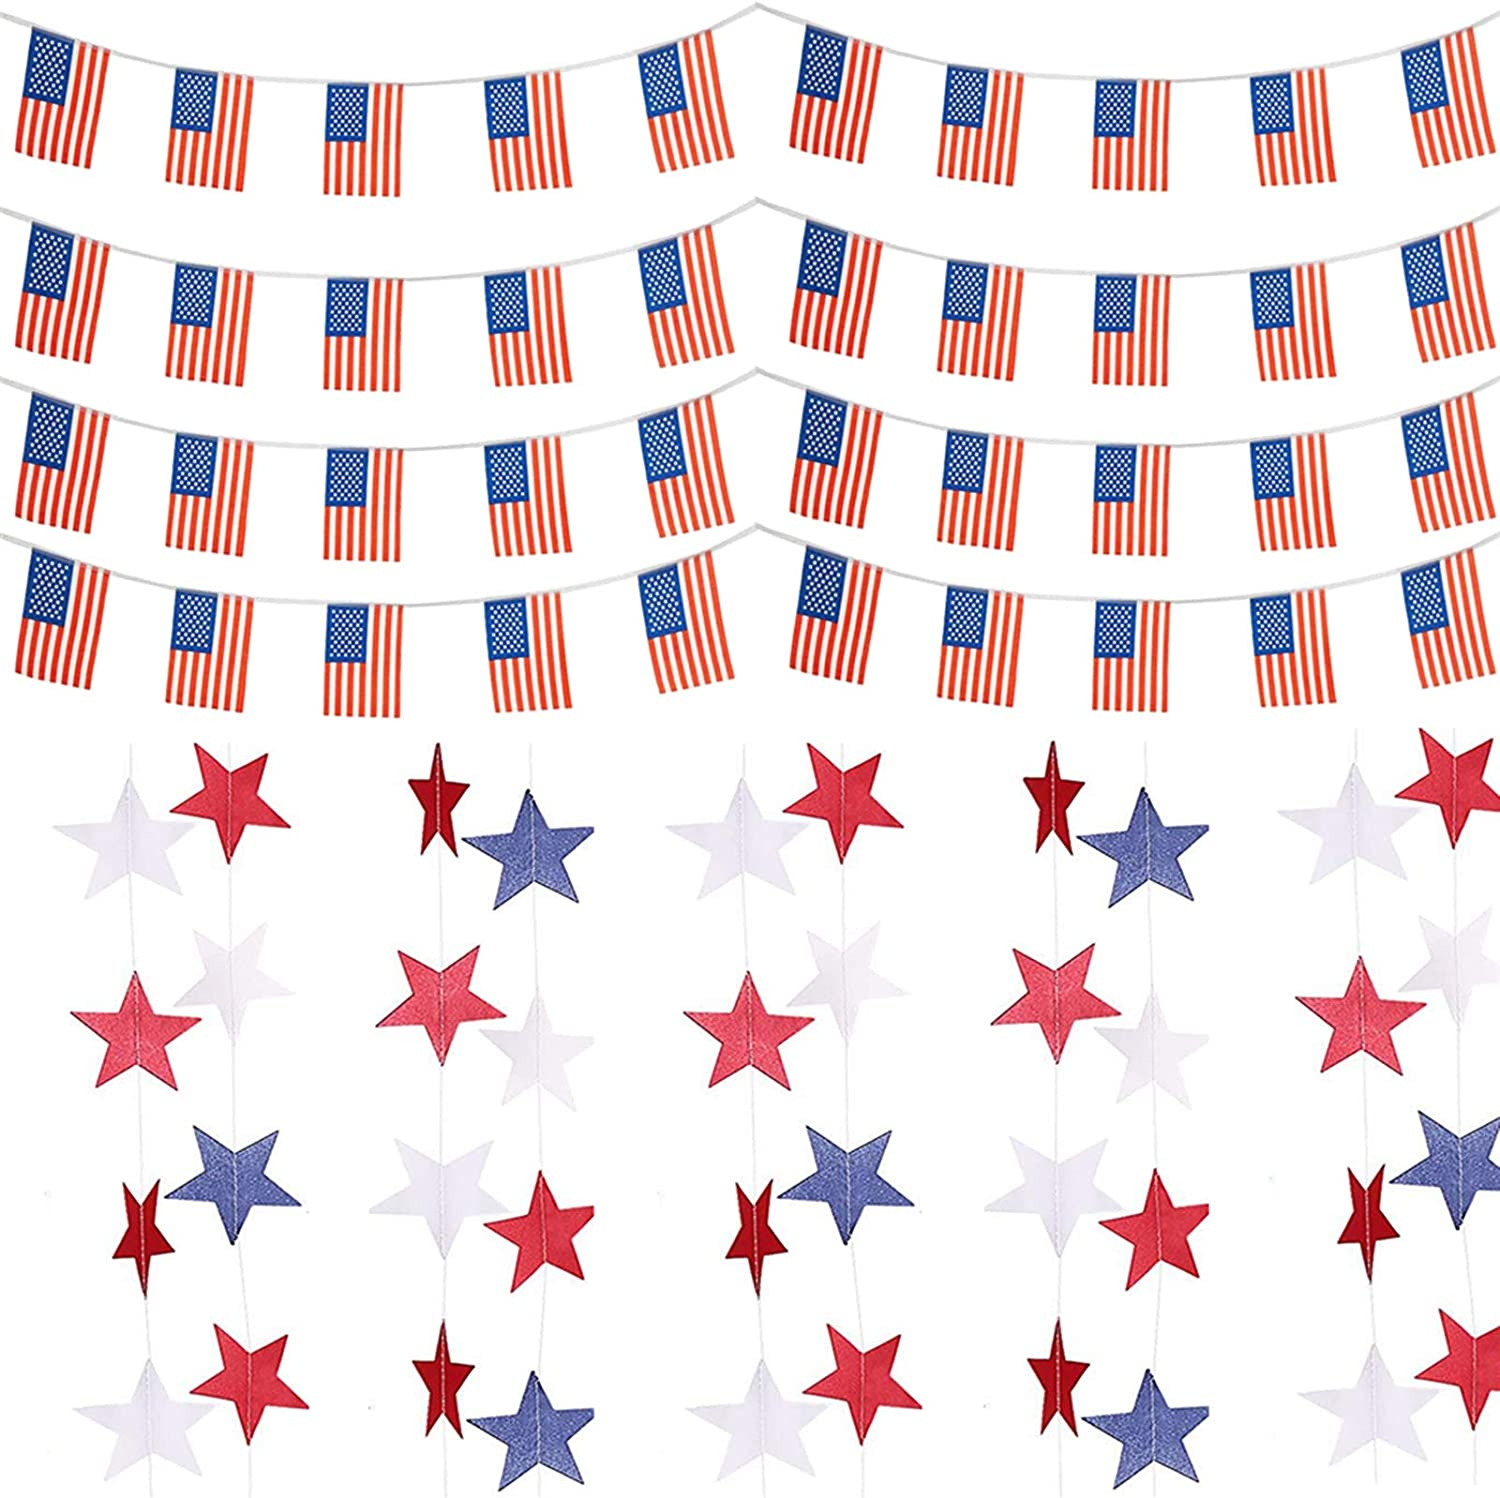 SEKAM 4th of July Patriotic Decorations Set - American Flag Banner (40 PCS) & Patriotic Star Streamer Garland (36 PCS), USA American Flag Decor, Patriotic Outdoor Decorations for Indepedence Day